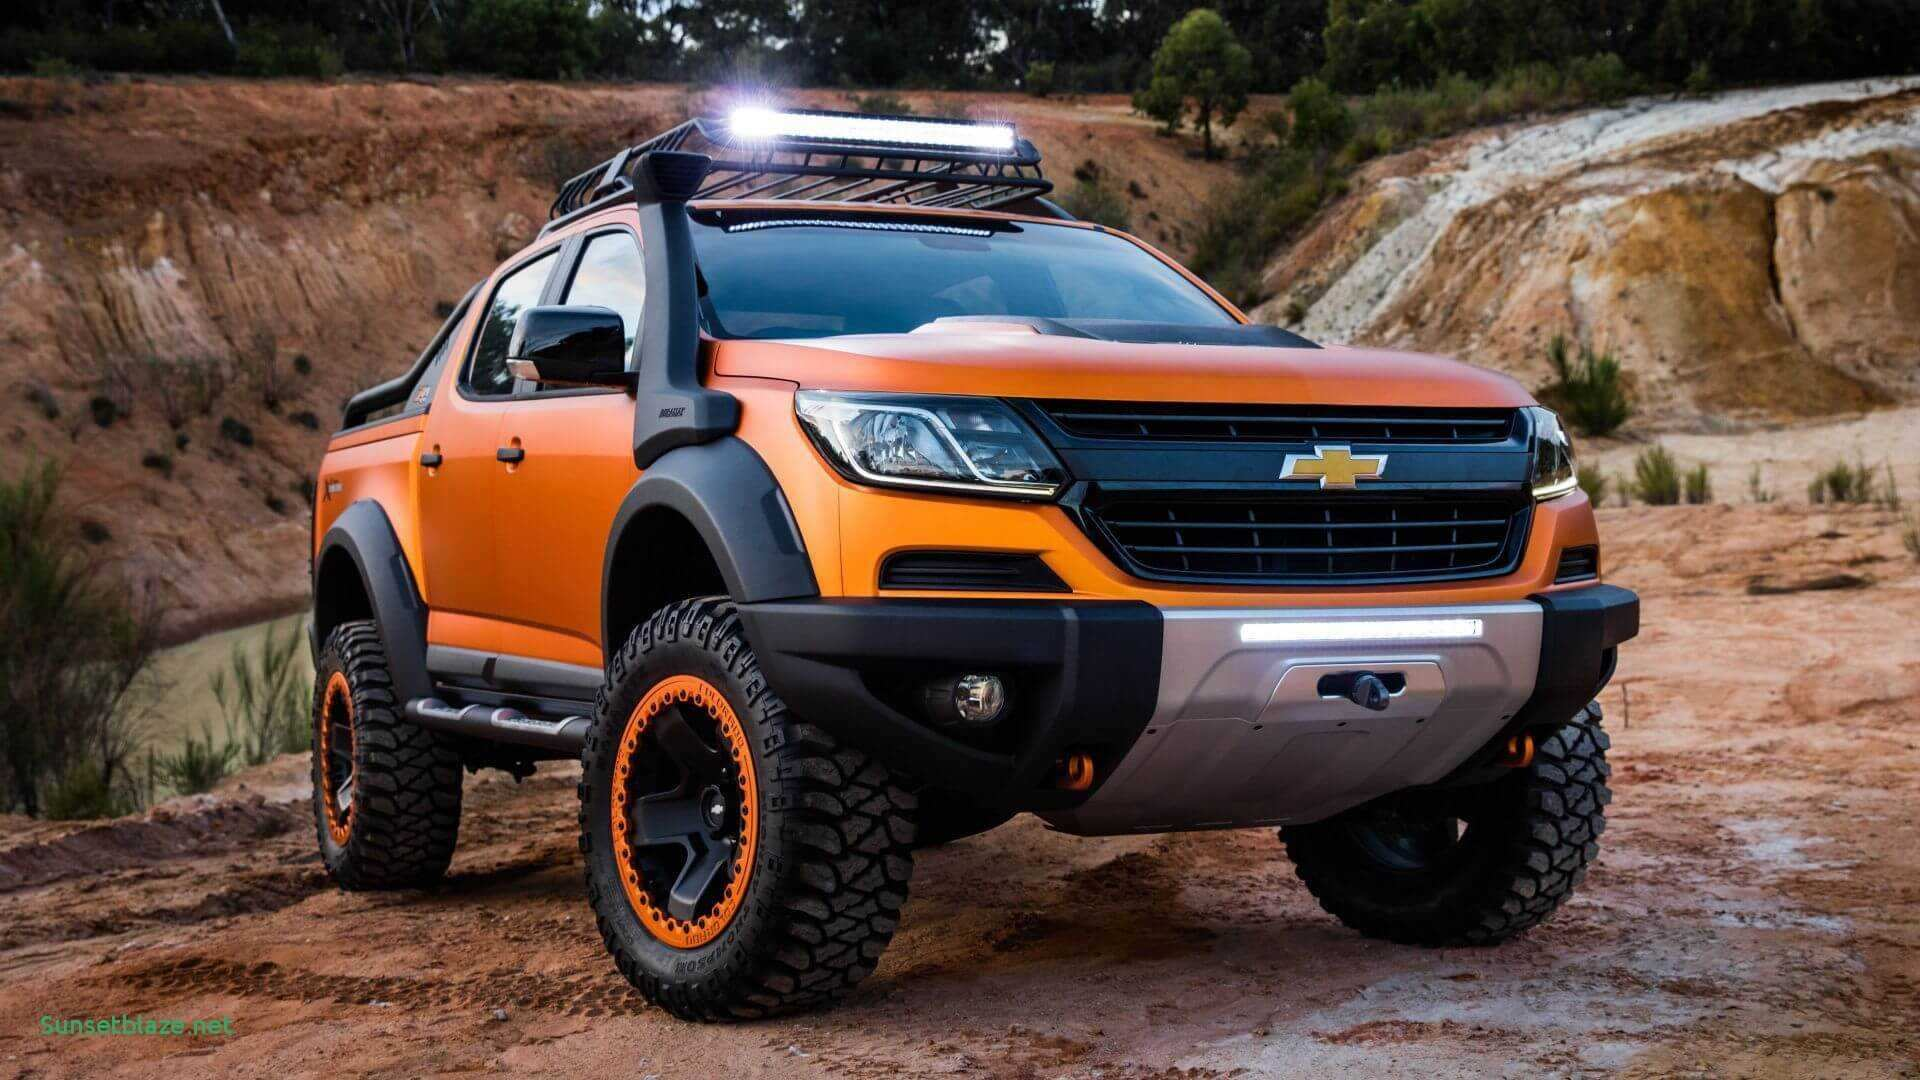 26 The Best 2019 Chevy Colorado Going Launched Soon Specs And Review